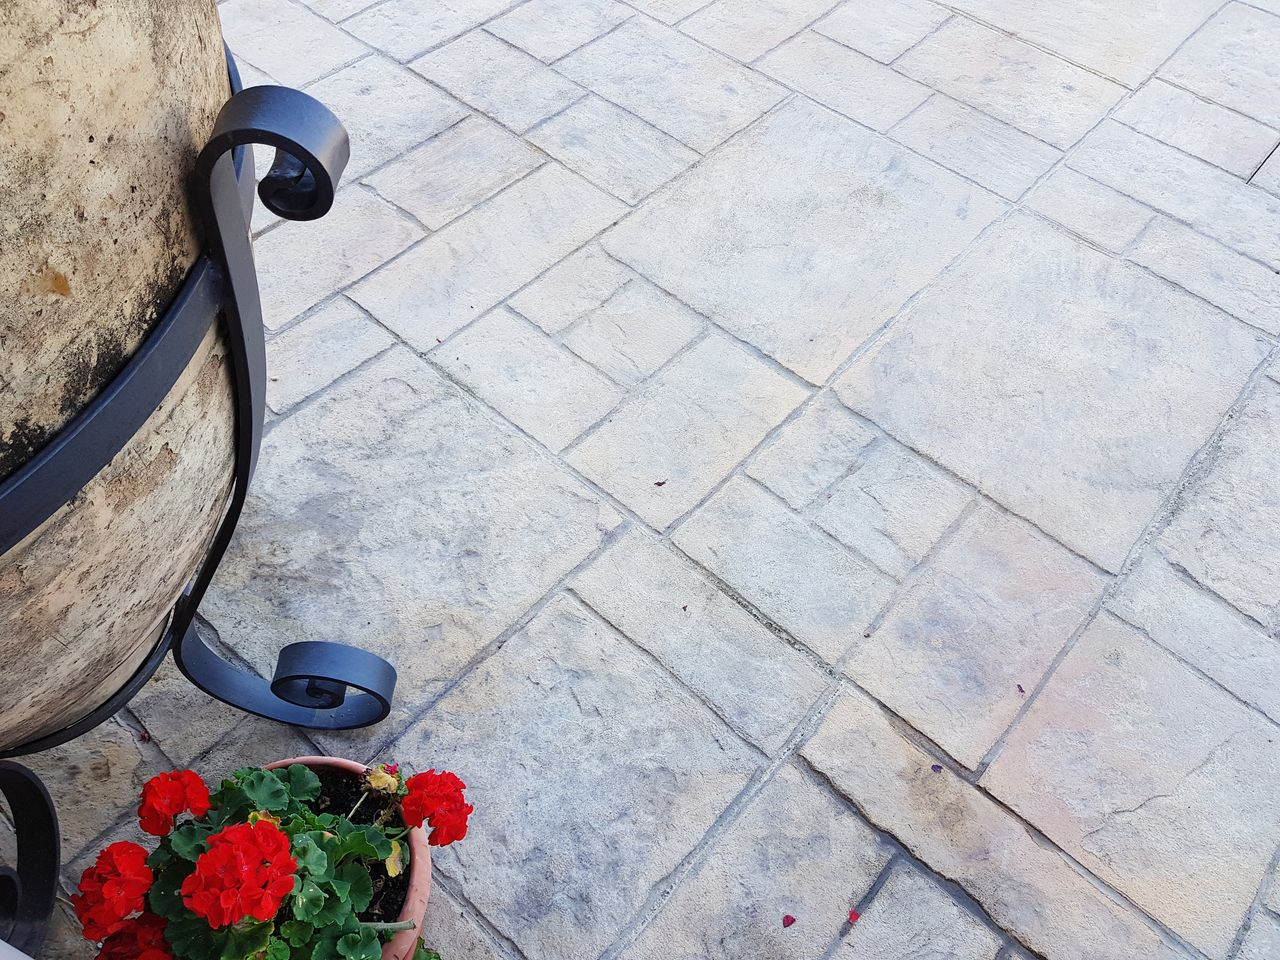 flower, flowering plant, high angle view, plant, footpath, day, tile, nature, flooring, tiled floor, no people, outdoors, stone, red, freshness, street, transportation, growth, beauty in nature, low section, paving stone